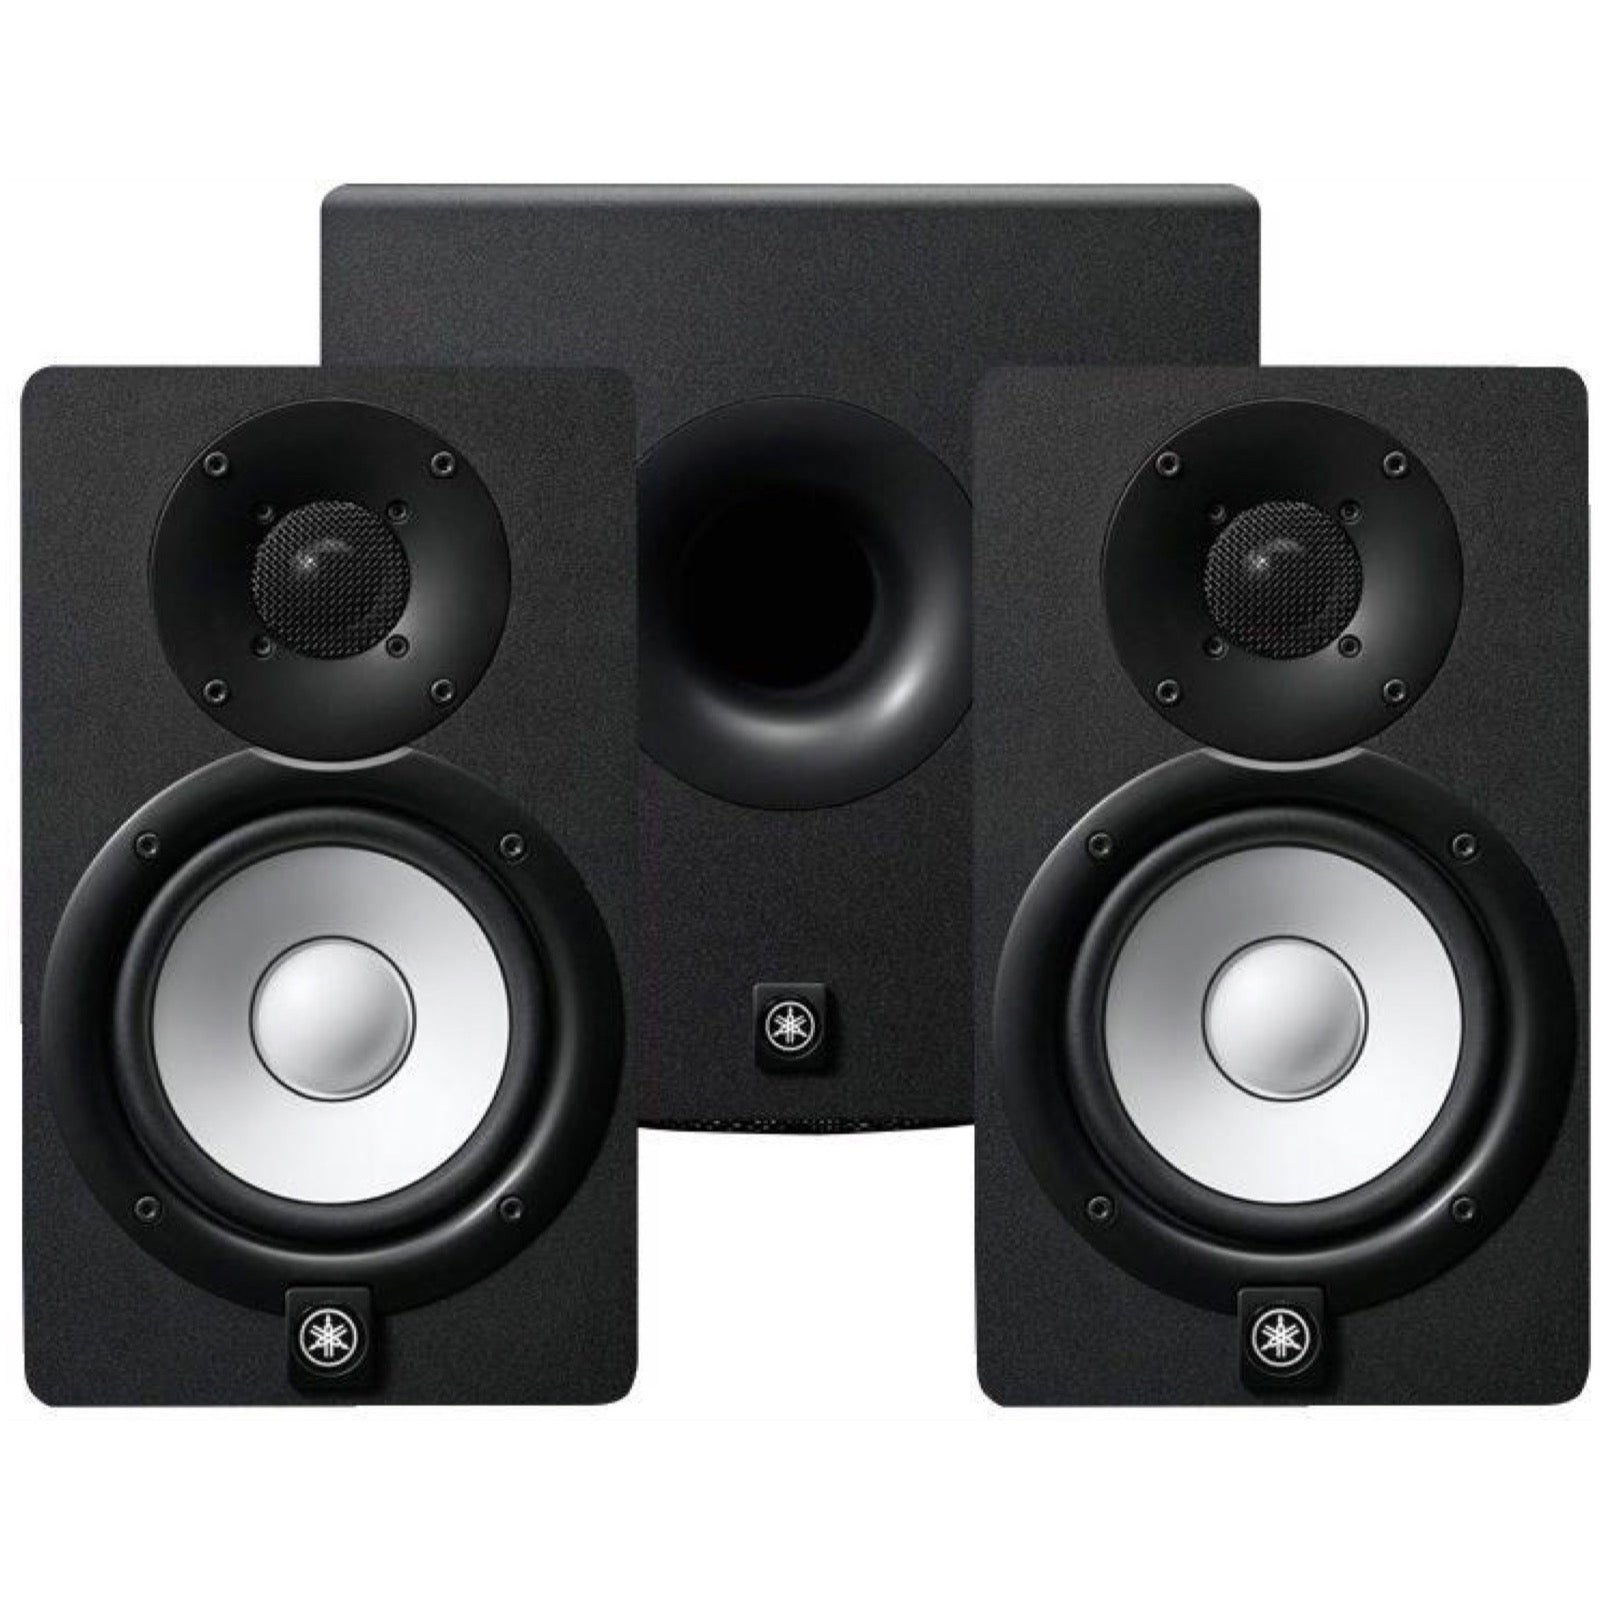 Yamaha HS5 Active Studio Monitor, Pair, with Yamaha HS8S Powered Studio Subwoofer